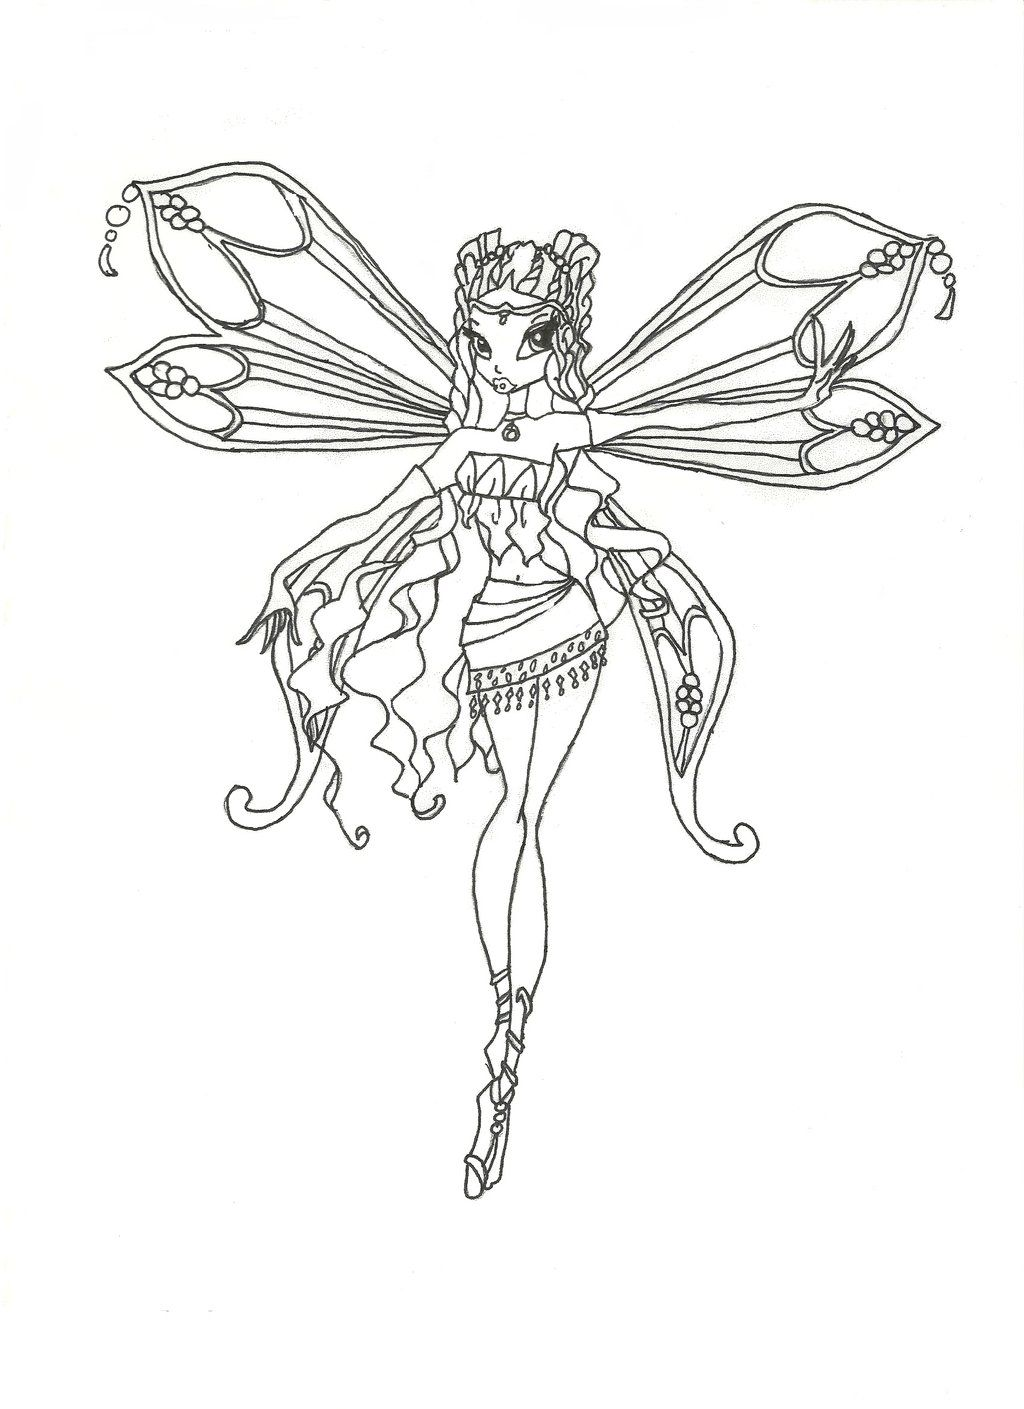 winx club roxy coloring pages ideas for kids how fun